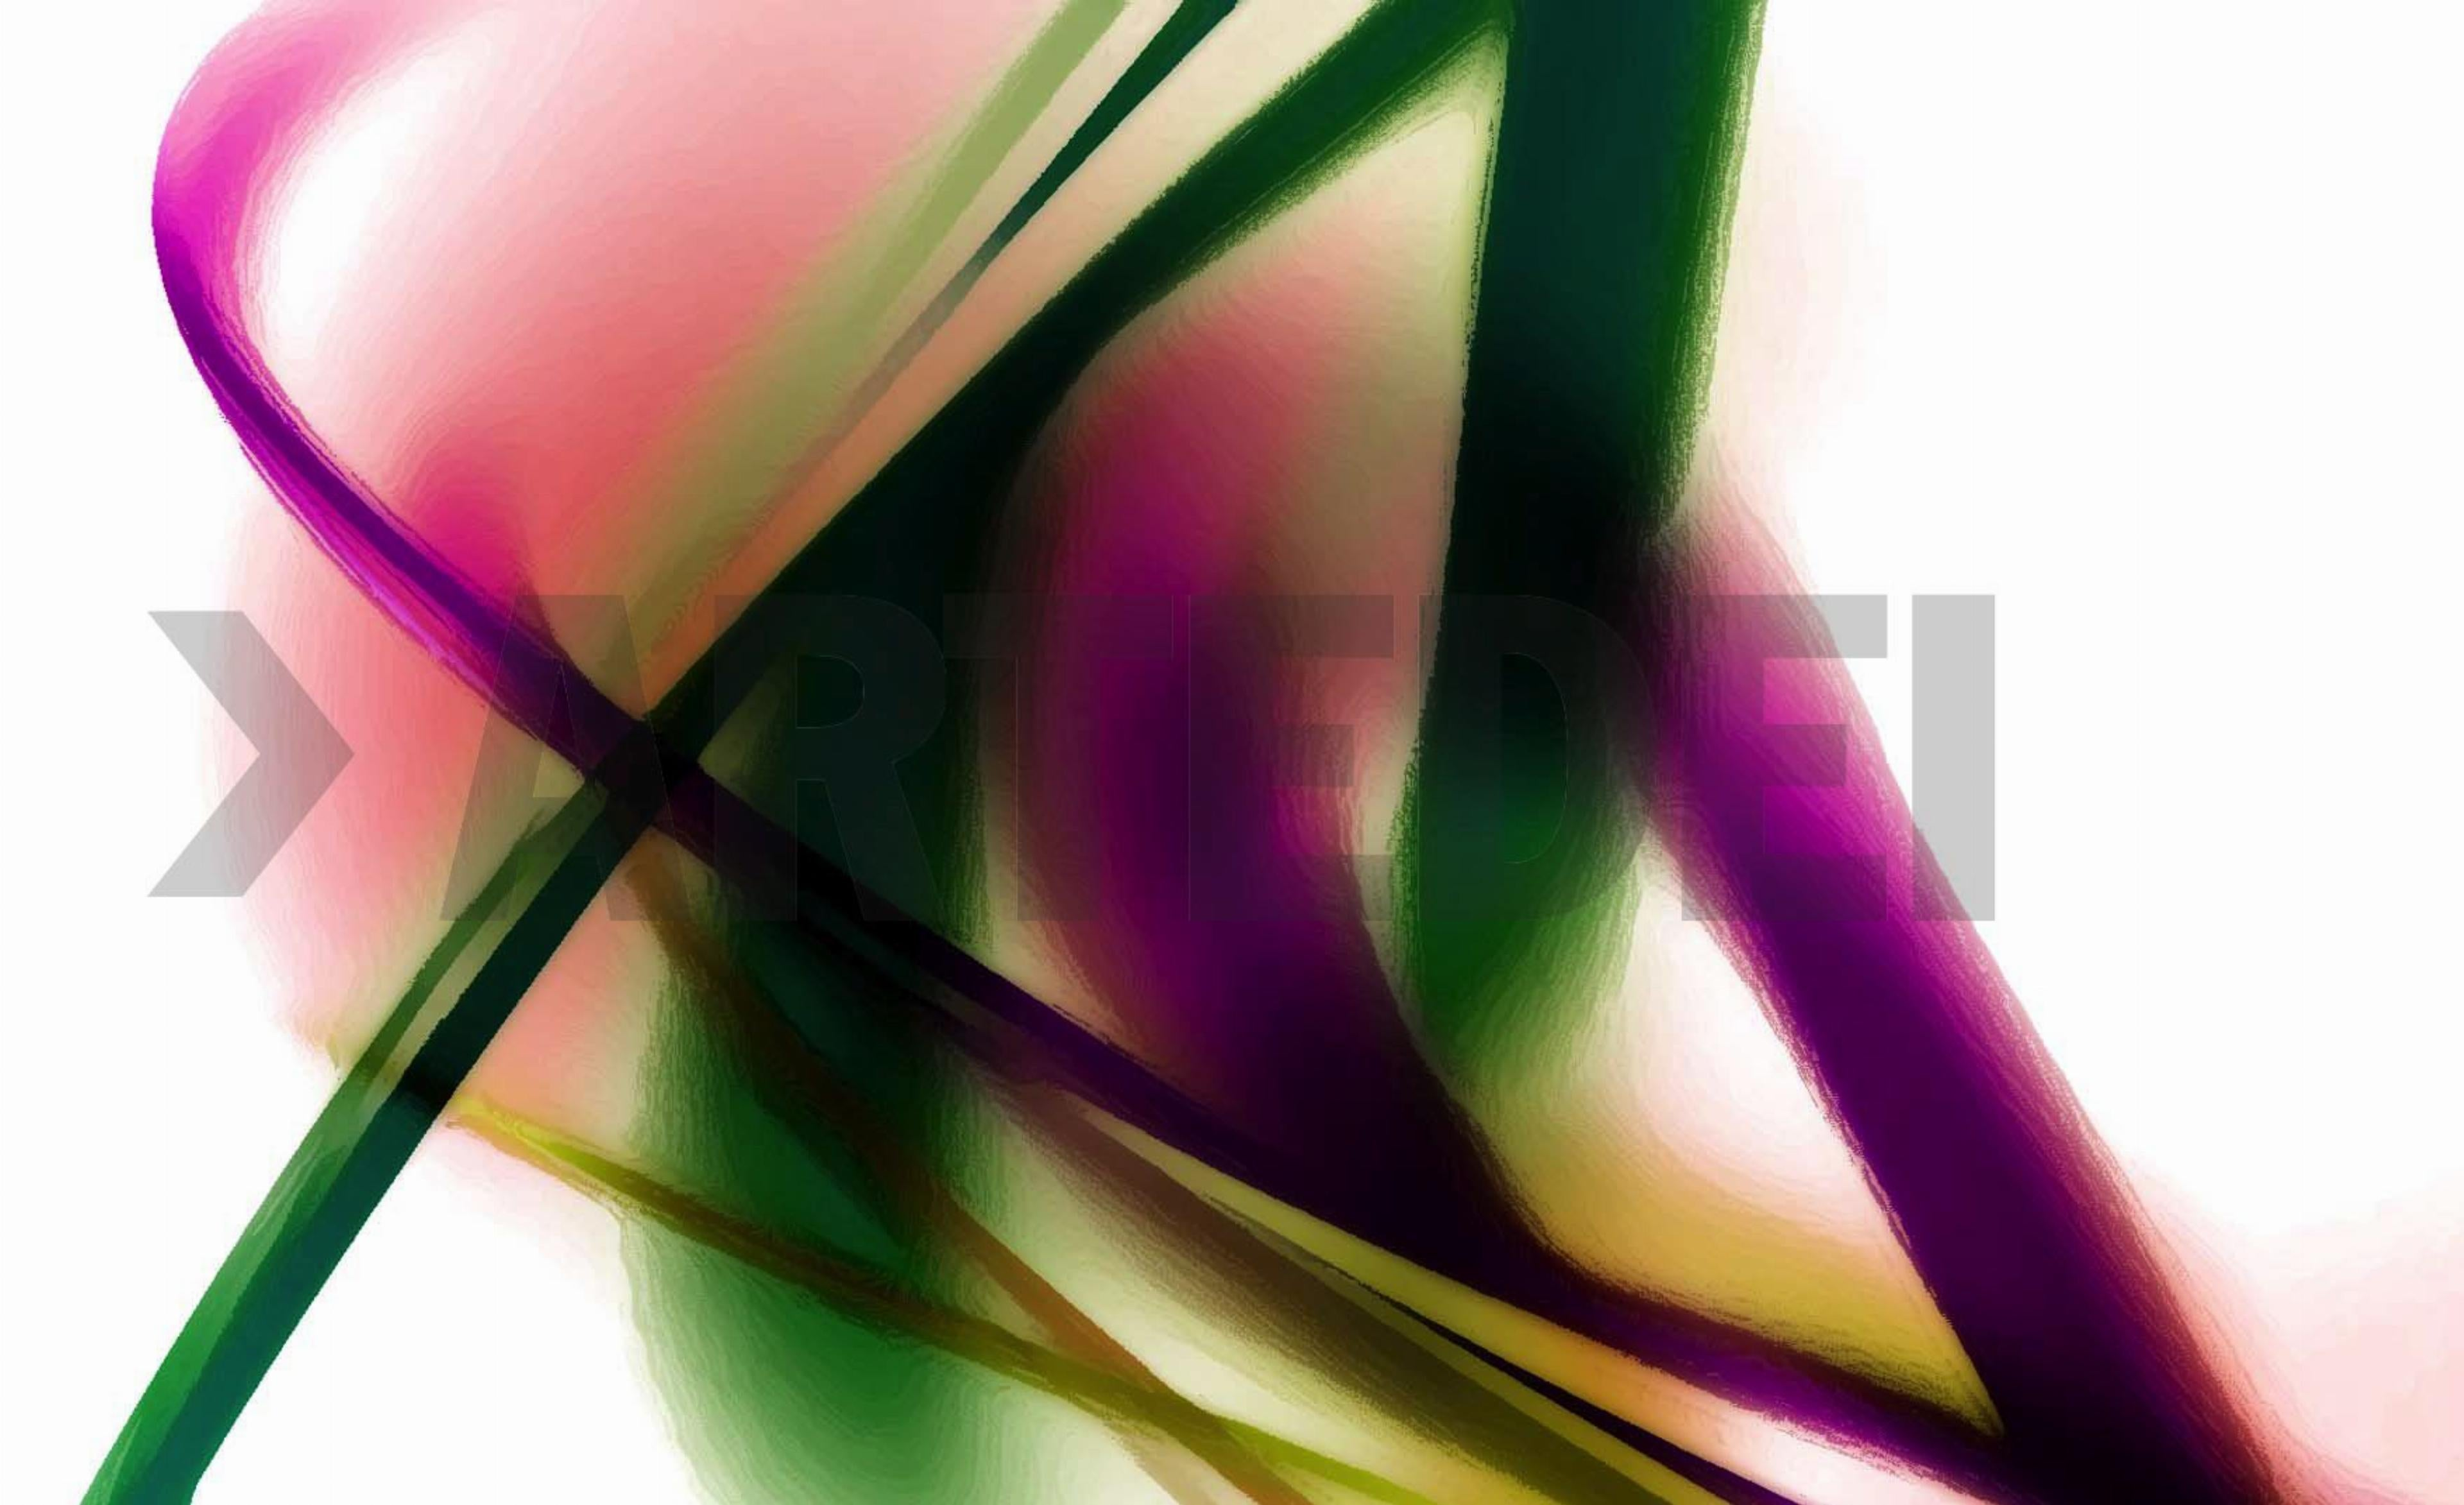 Product image of ARTIST-NIRVANA-LICHT, COLLECTION-IRREGULAR-AND-DIGITAL, SERIES-TULIP